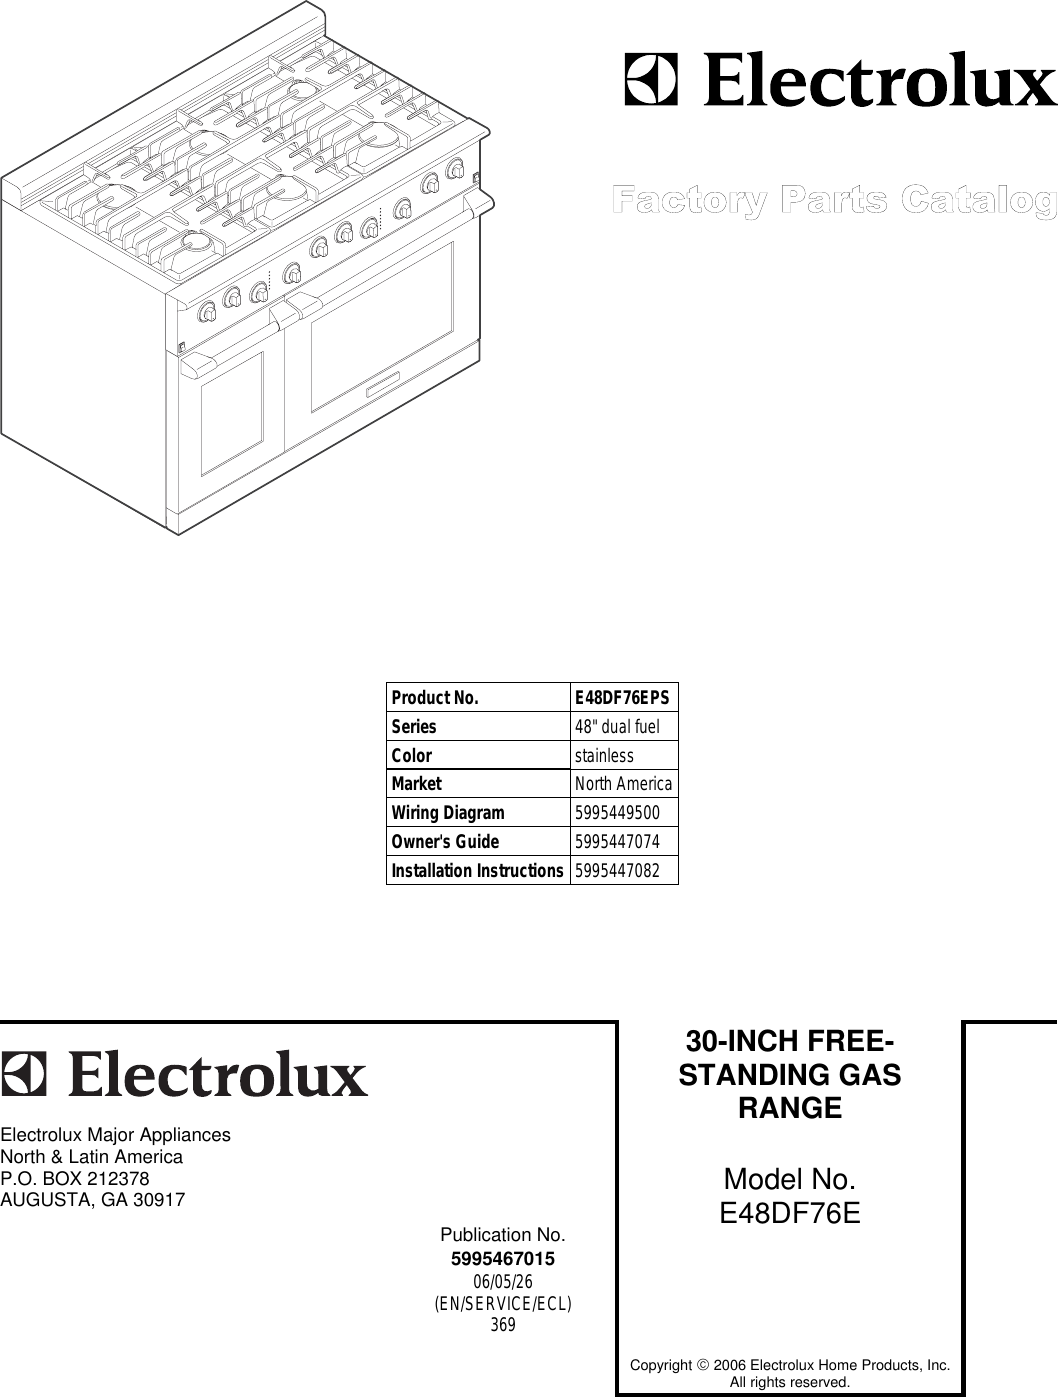 Electrolux E48df76e Users Manual 5995467015 Rack Wiring Diagram Aps Page 1 Of 12